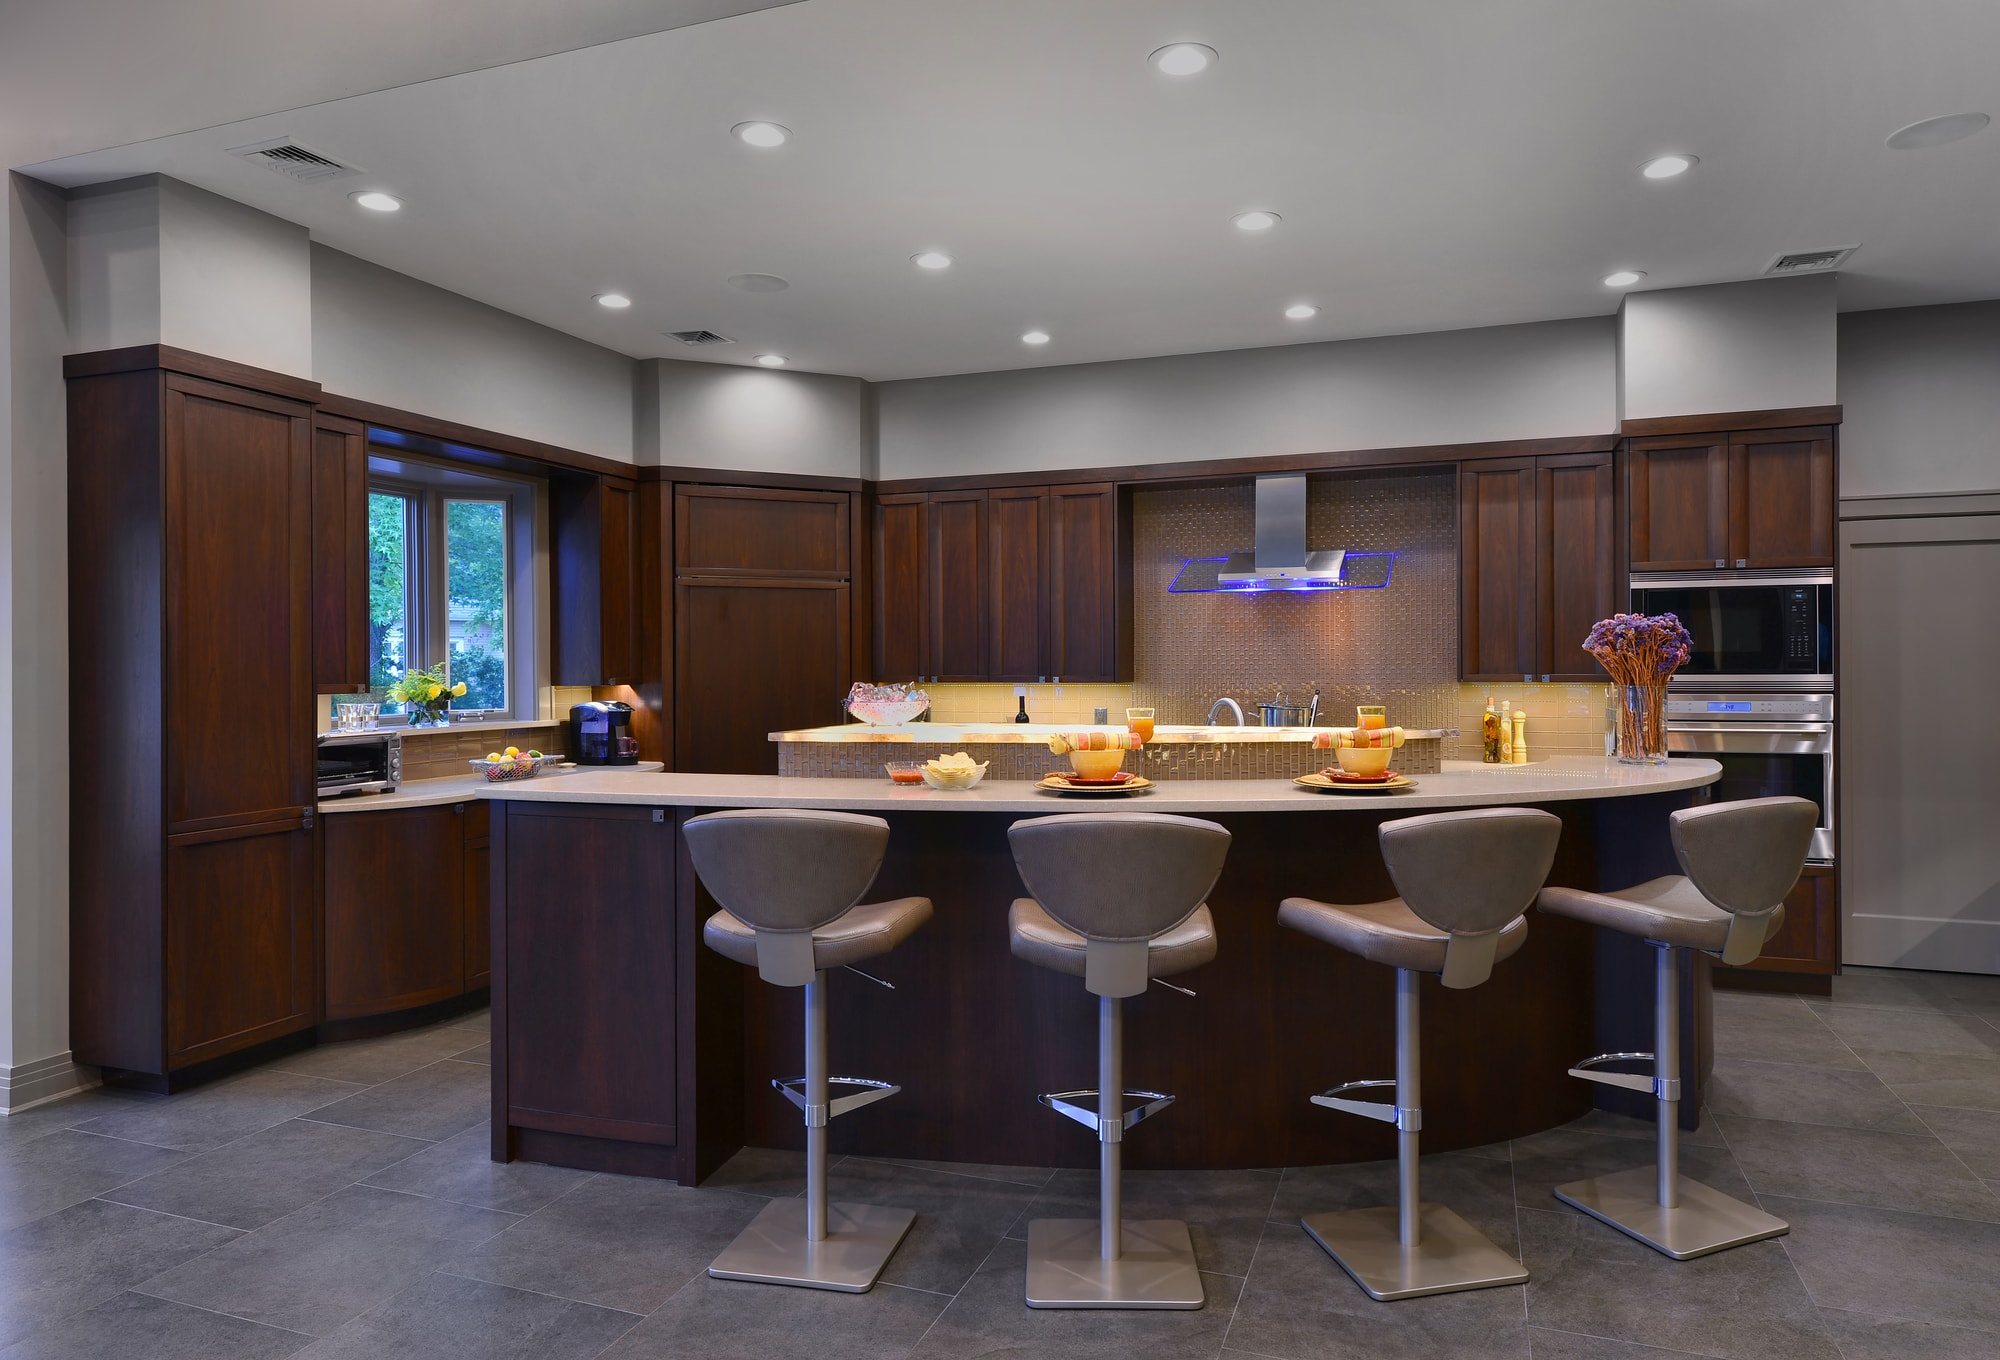 Transitional style kitchen with oval cut kitchen island